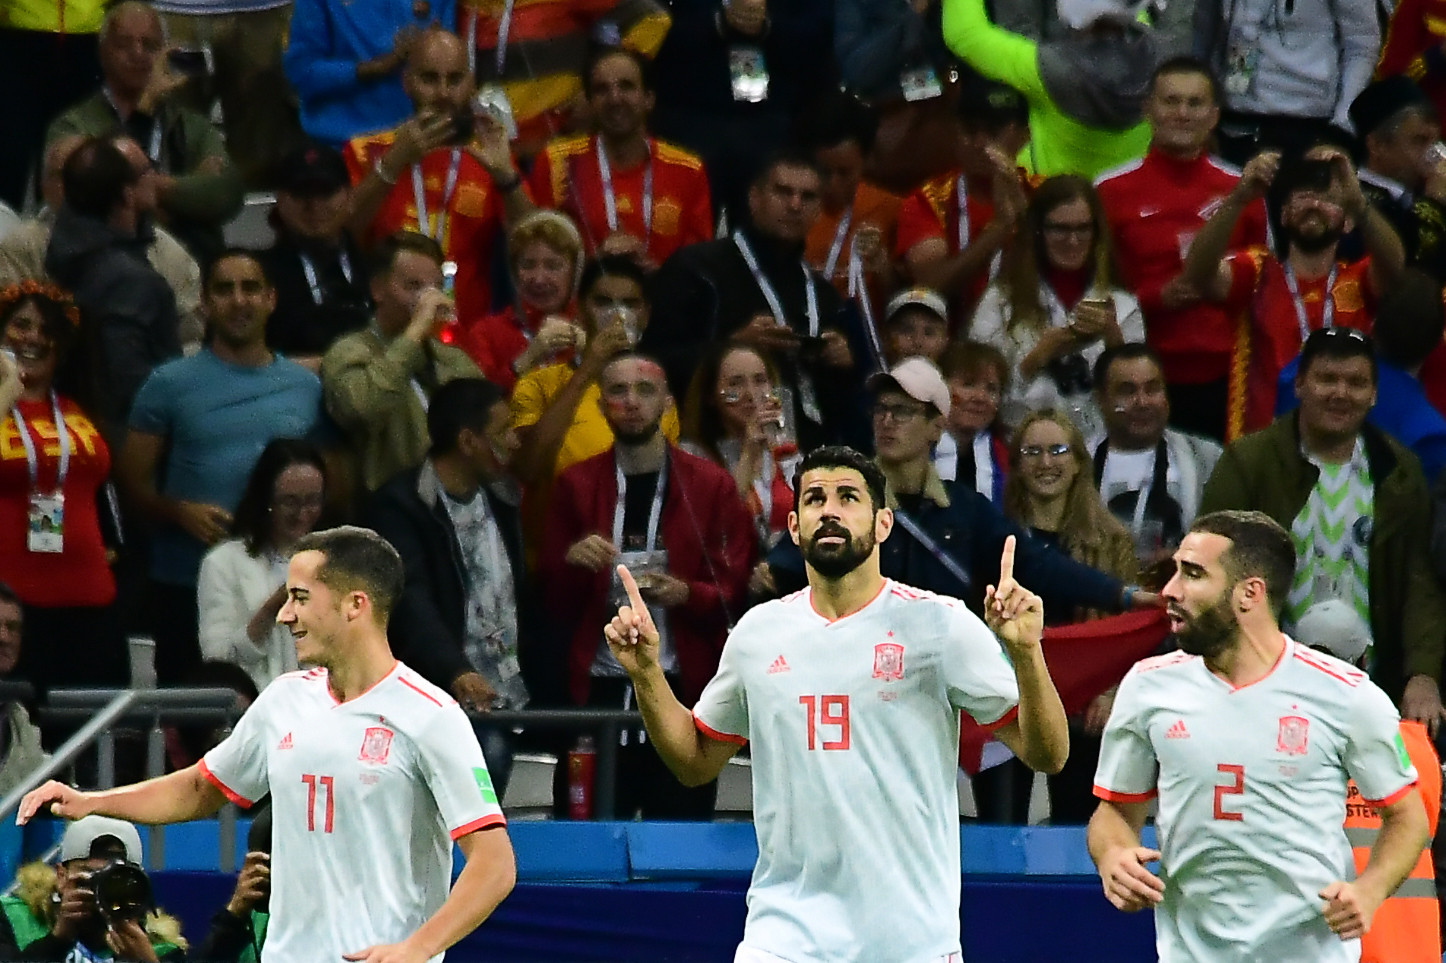 Diego Costa celebrates after scoring the winner for Spain against Iran ©Getty Images